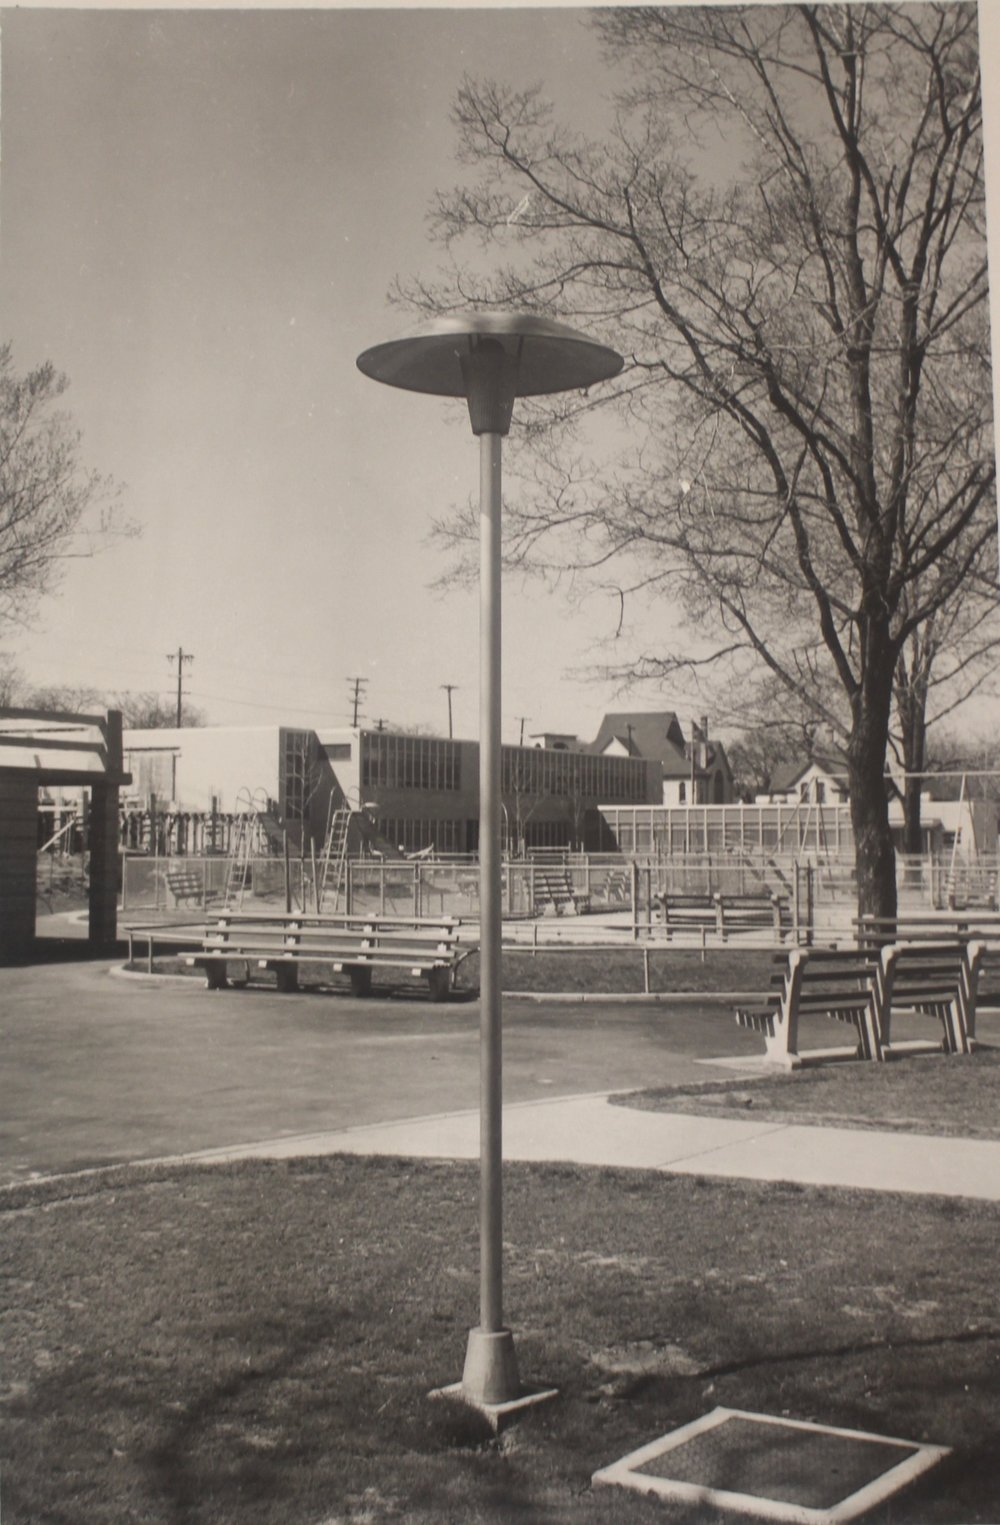 LIGHTING AND SHADED BENCHES AT PARK-PLAYGROUNDS